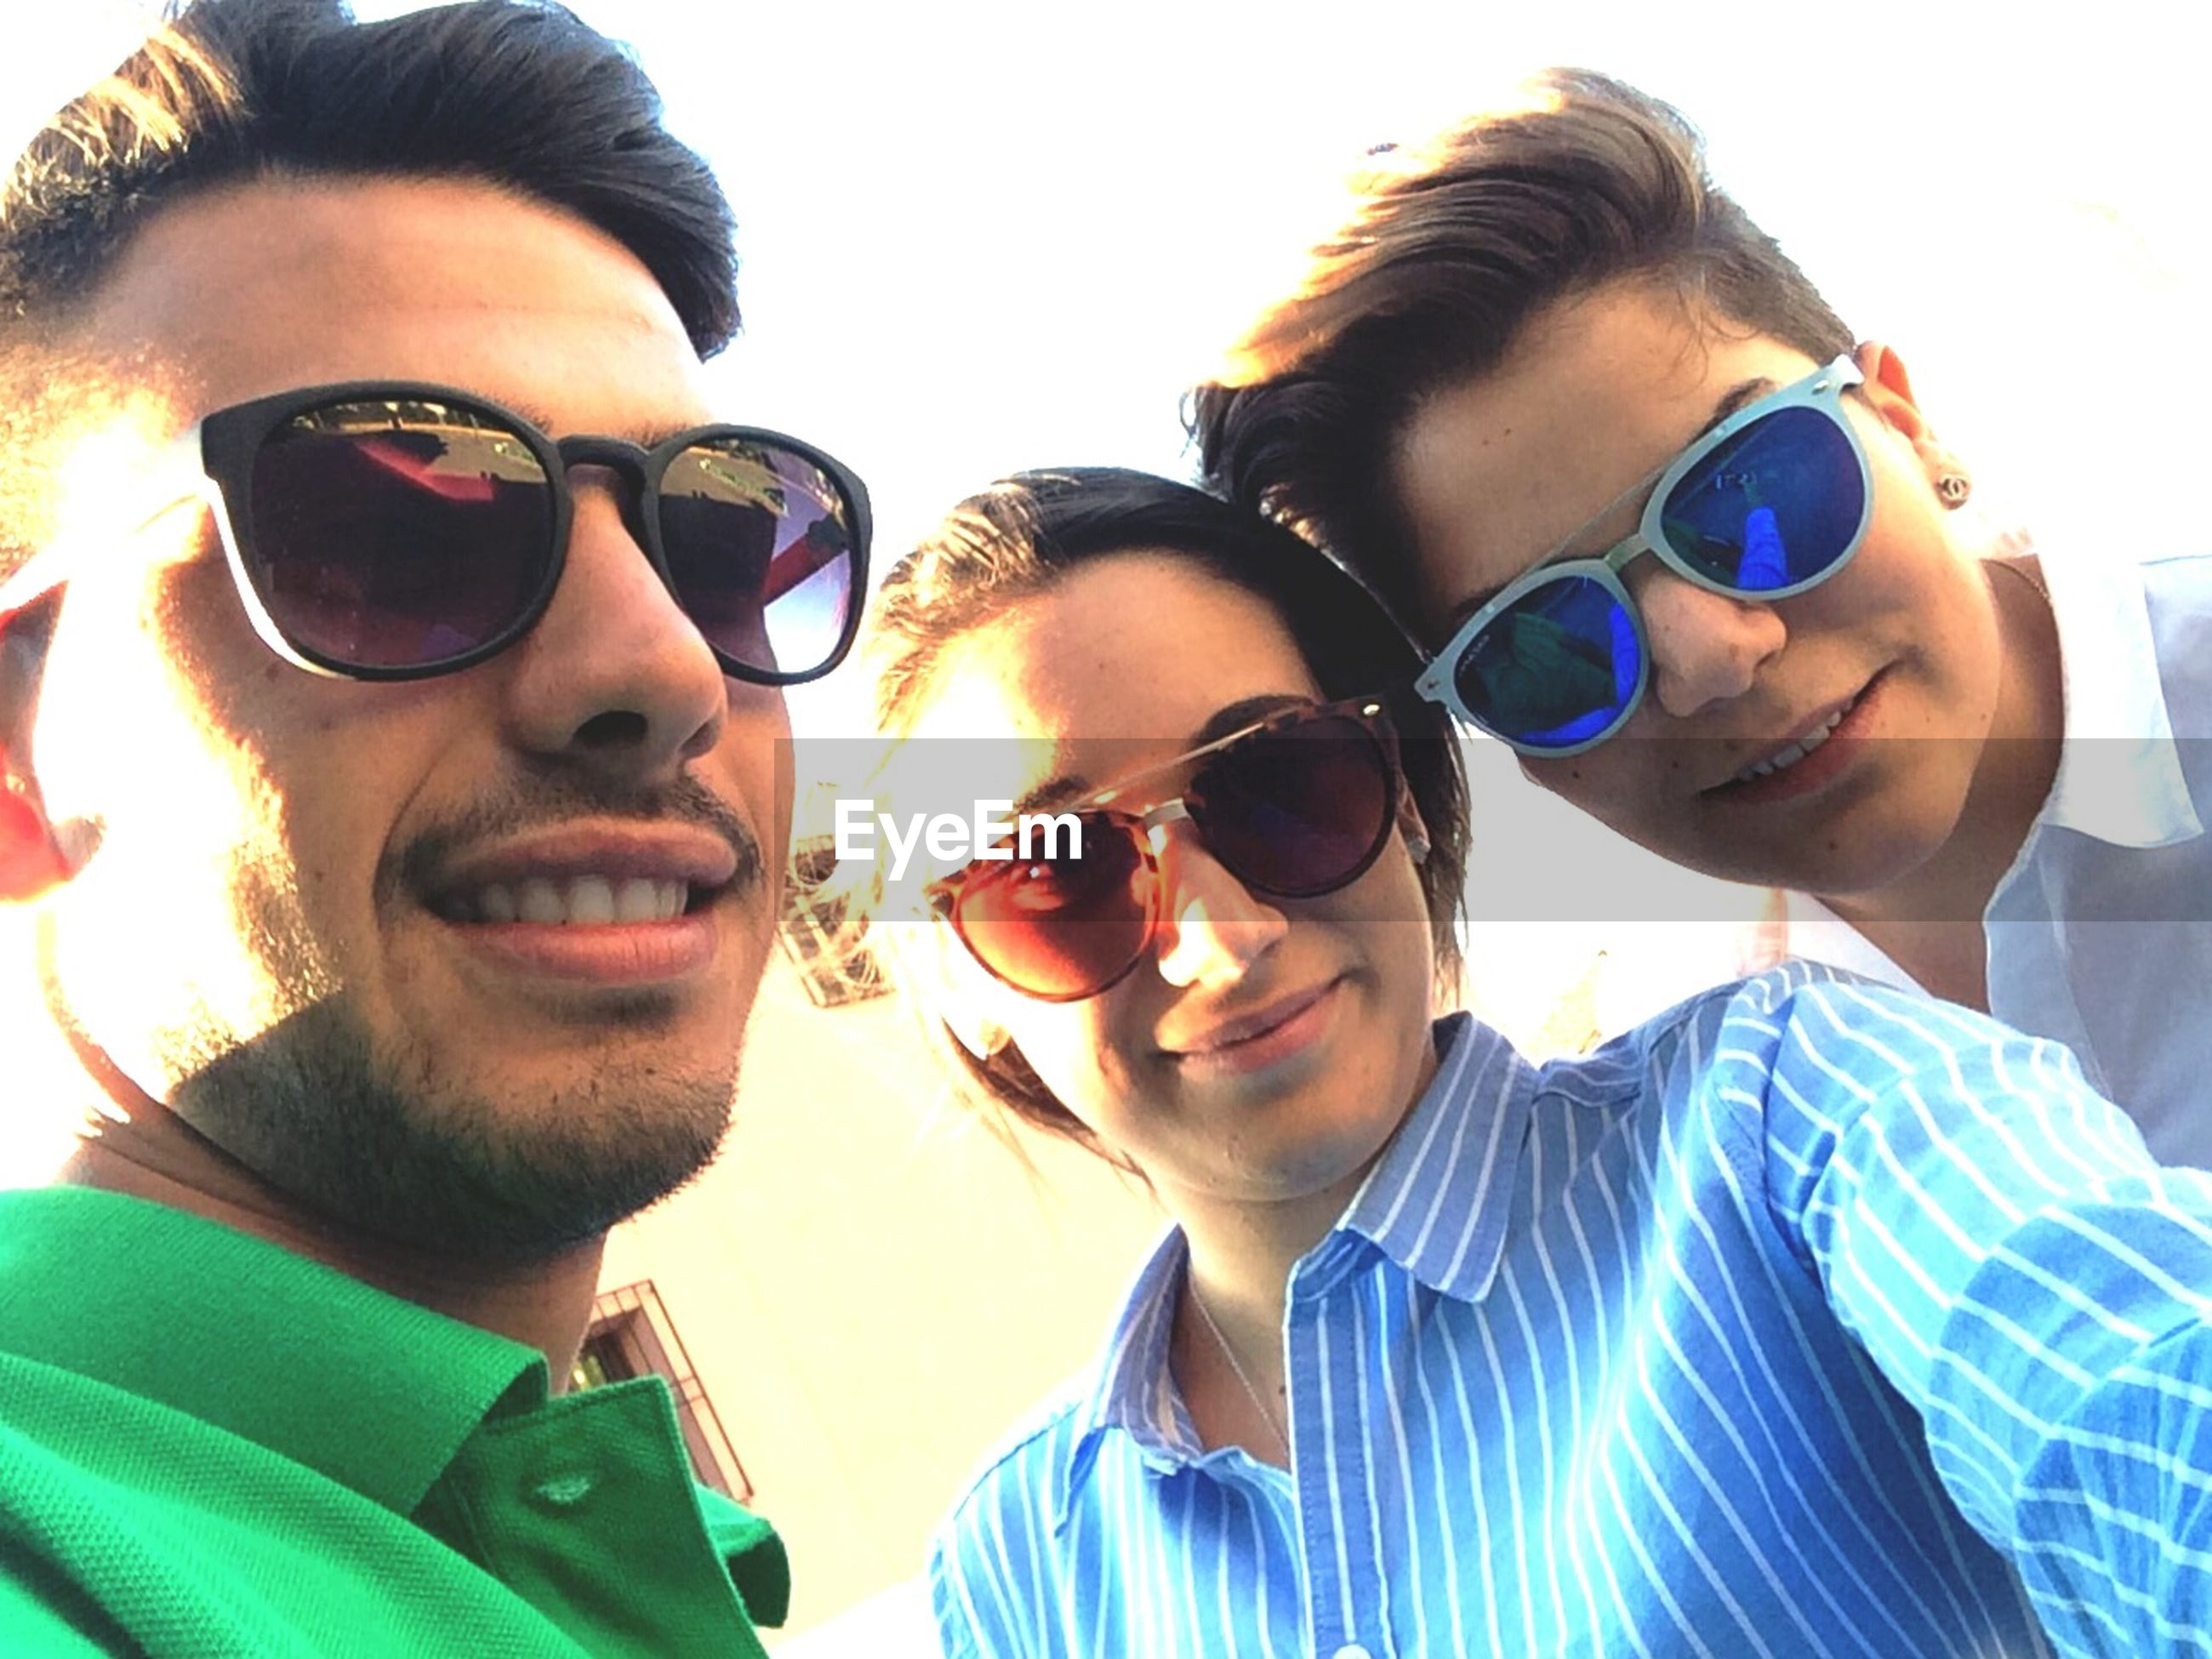 looking at camera, portrait, young adult, person, lifestyles, front view, leisure activity, smiling, young men, happiness, sunglasses, togetherness, casual clothing, bonding, toothy smile, headshot